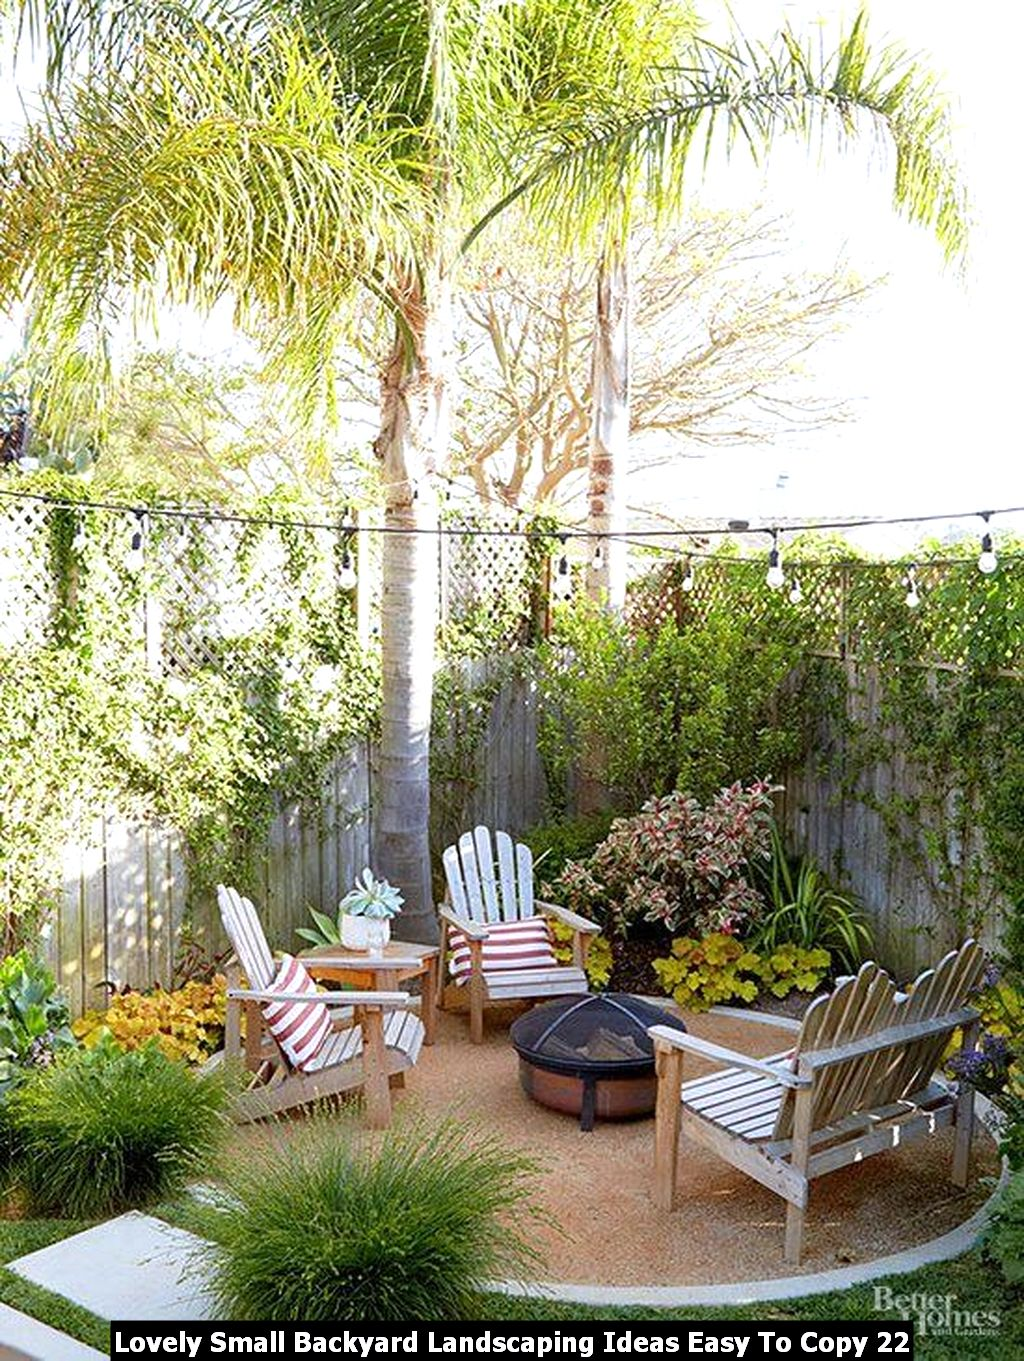 Lovely Small Backyard Landscaping Ideas Easy To Copy 22